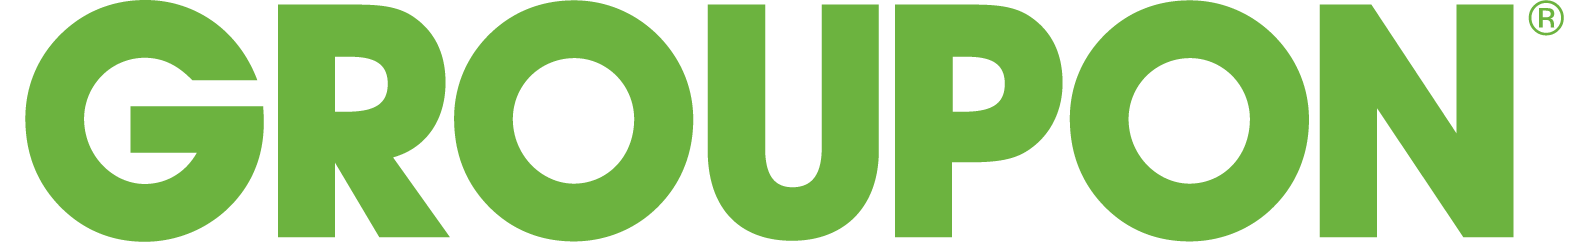 Groupon - e-commerce marketplace